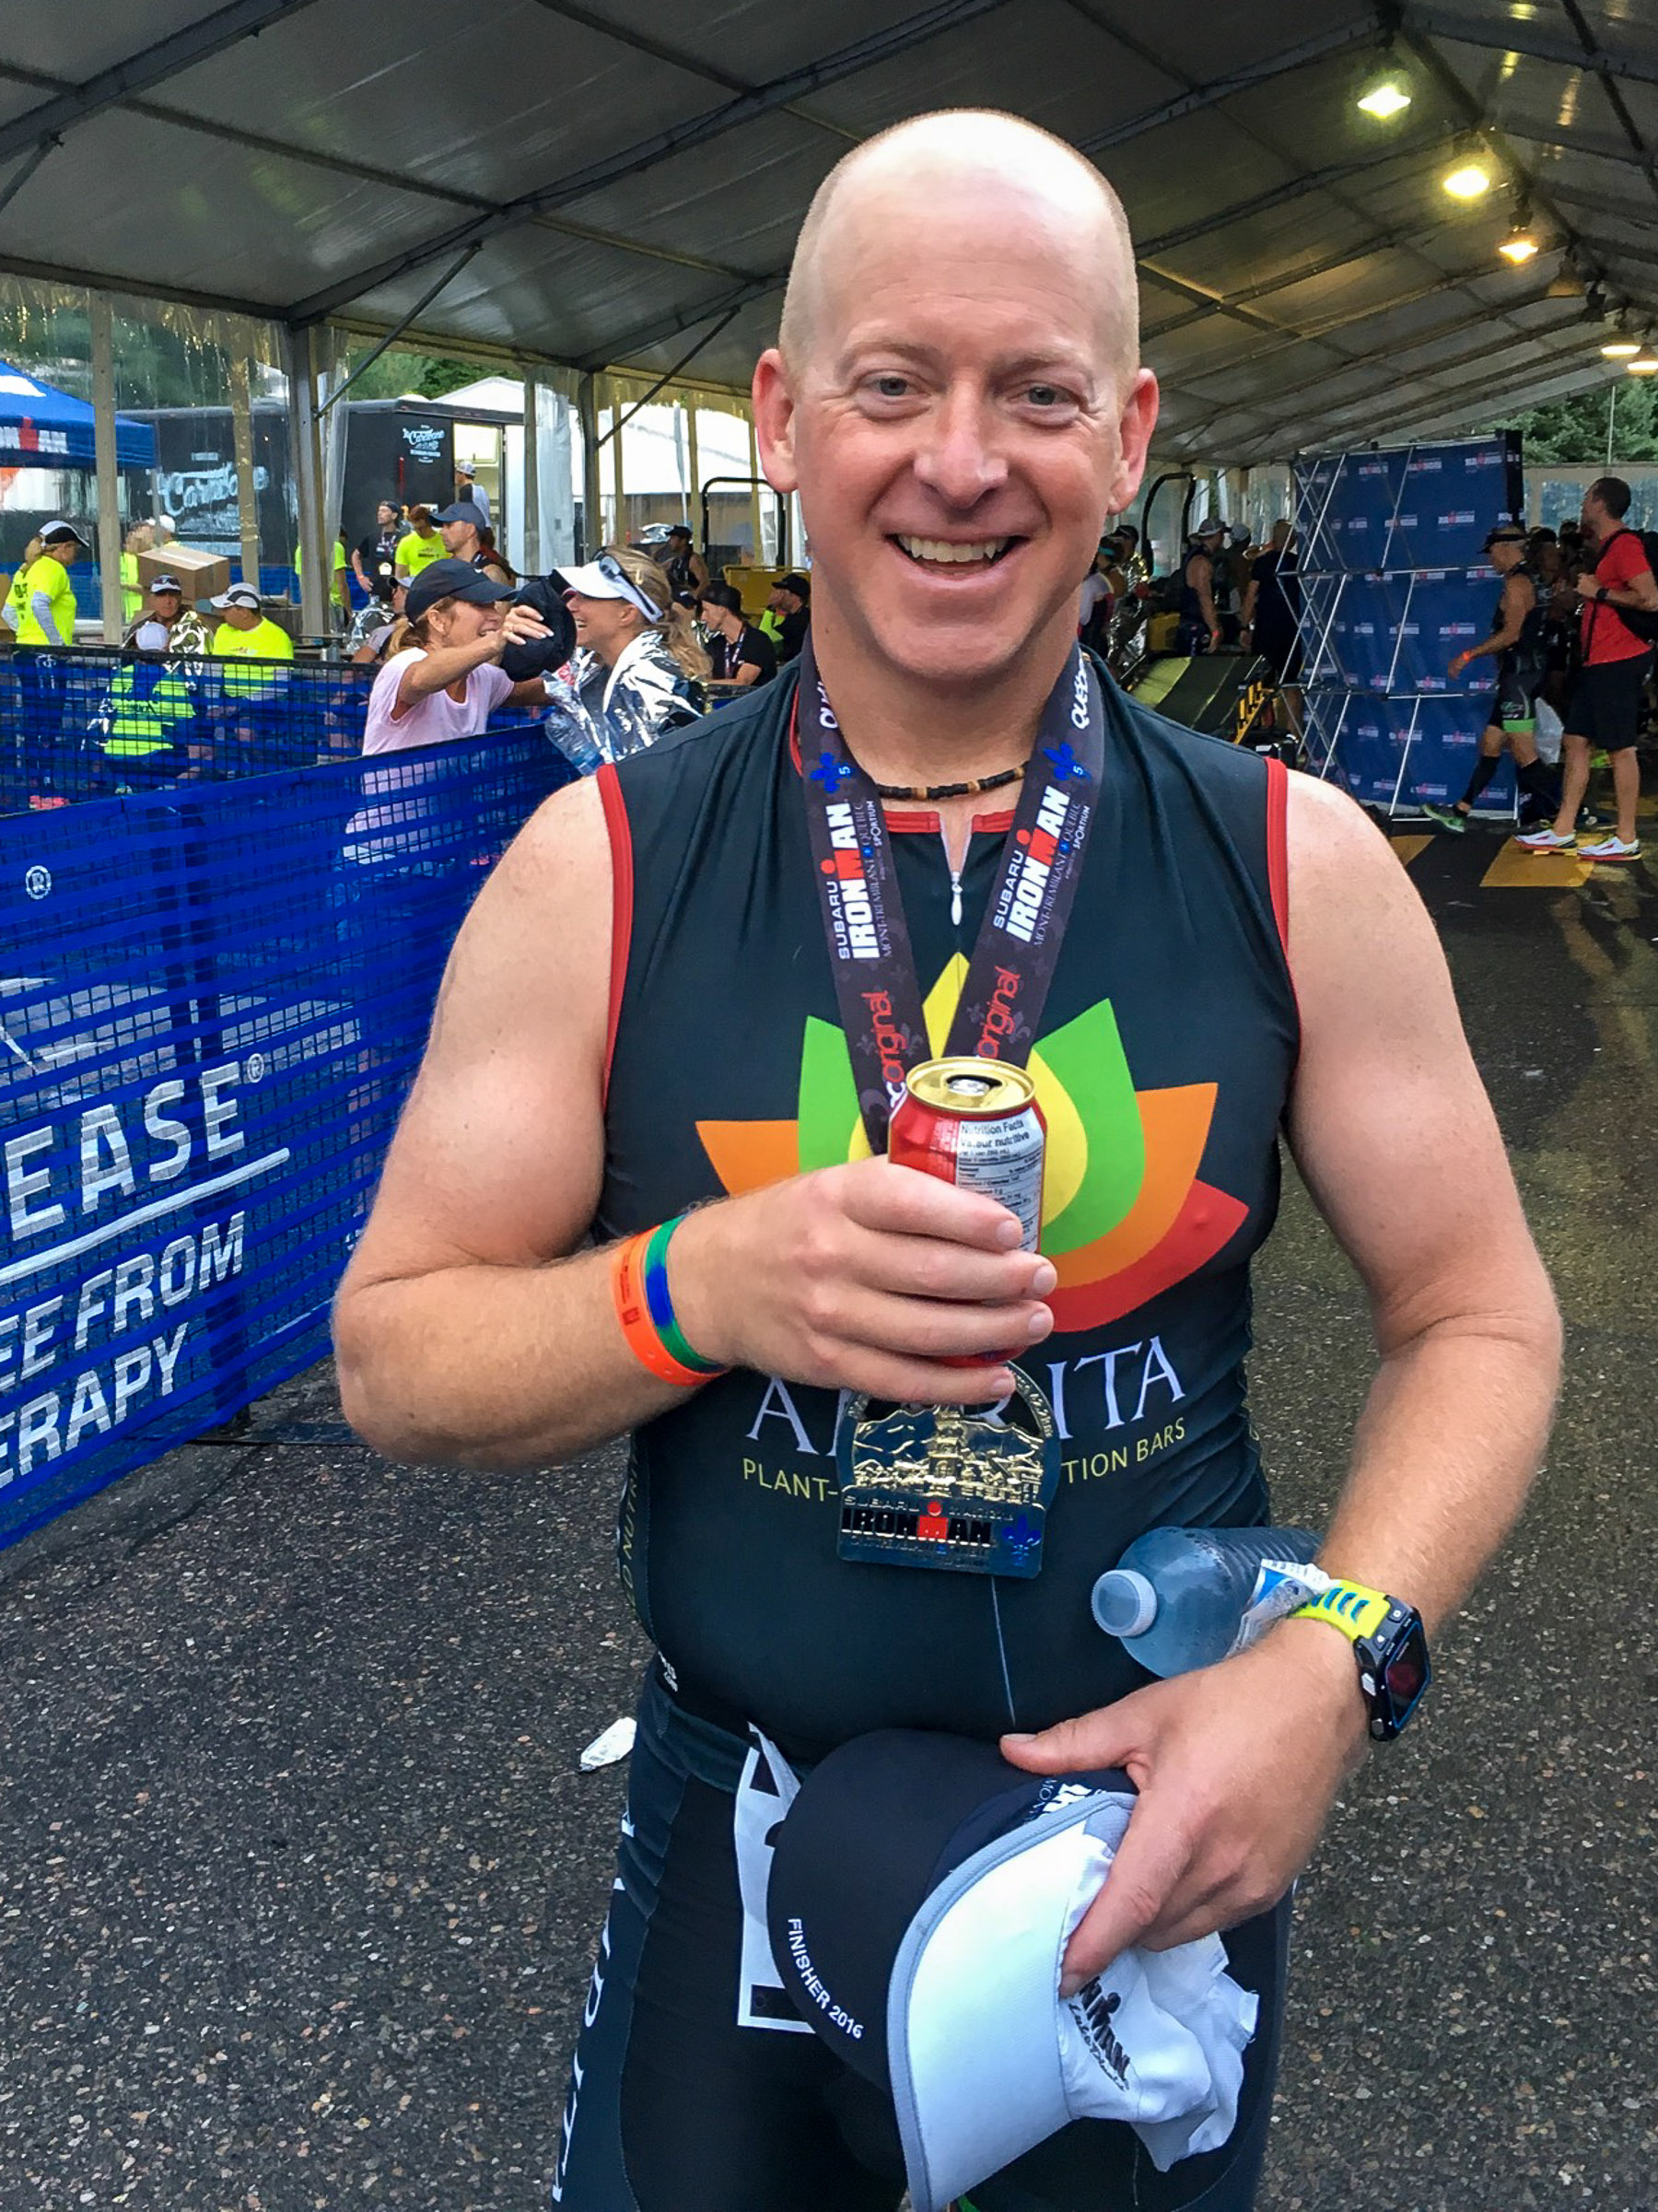 Ironman Mont-Tremblant 2016 - Feeling pretty relaxed after finishing and just coming back from my post-race massage.